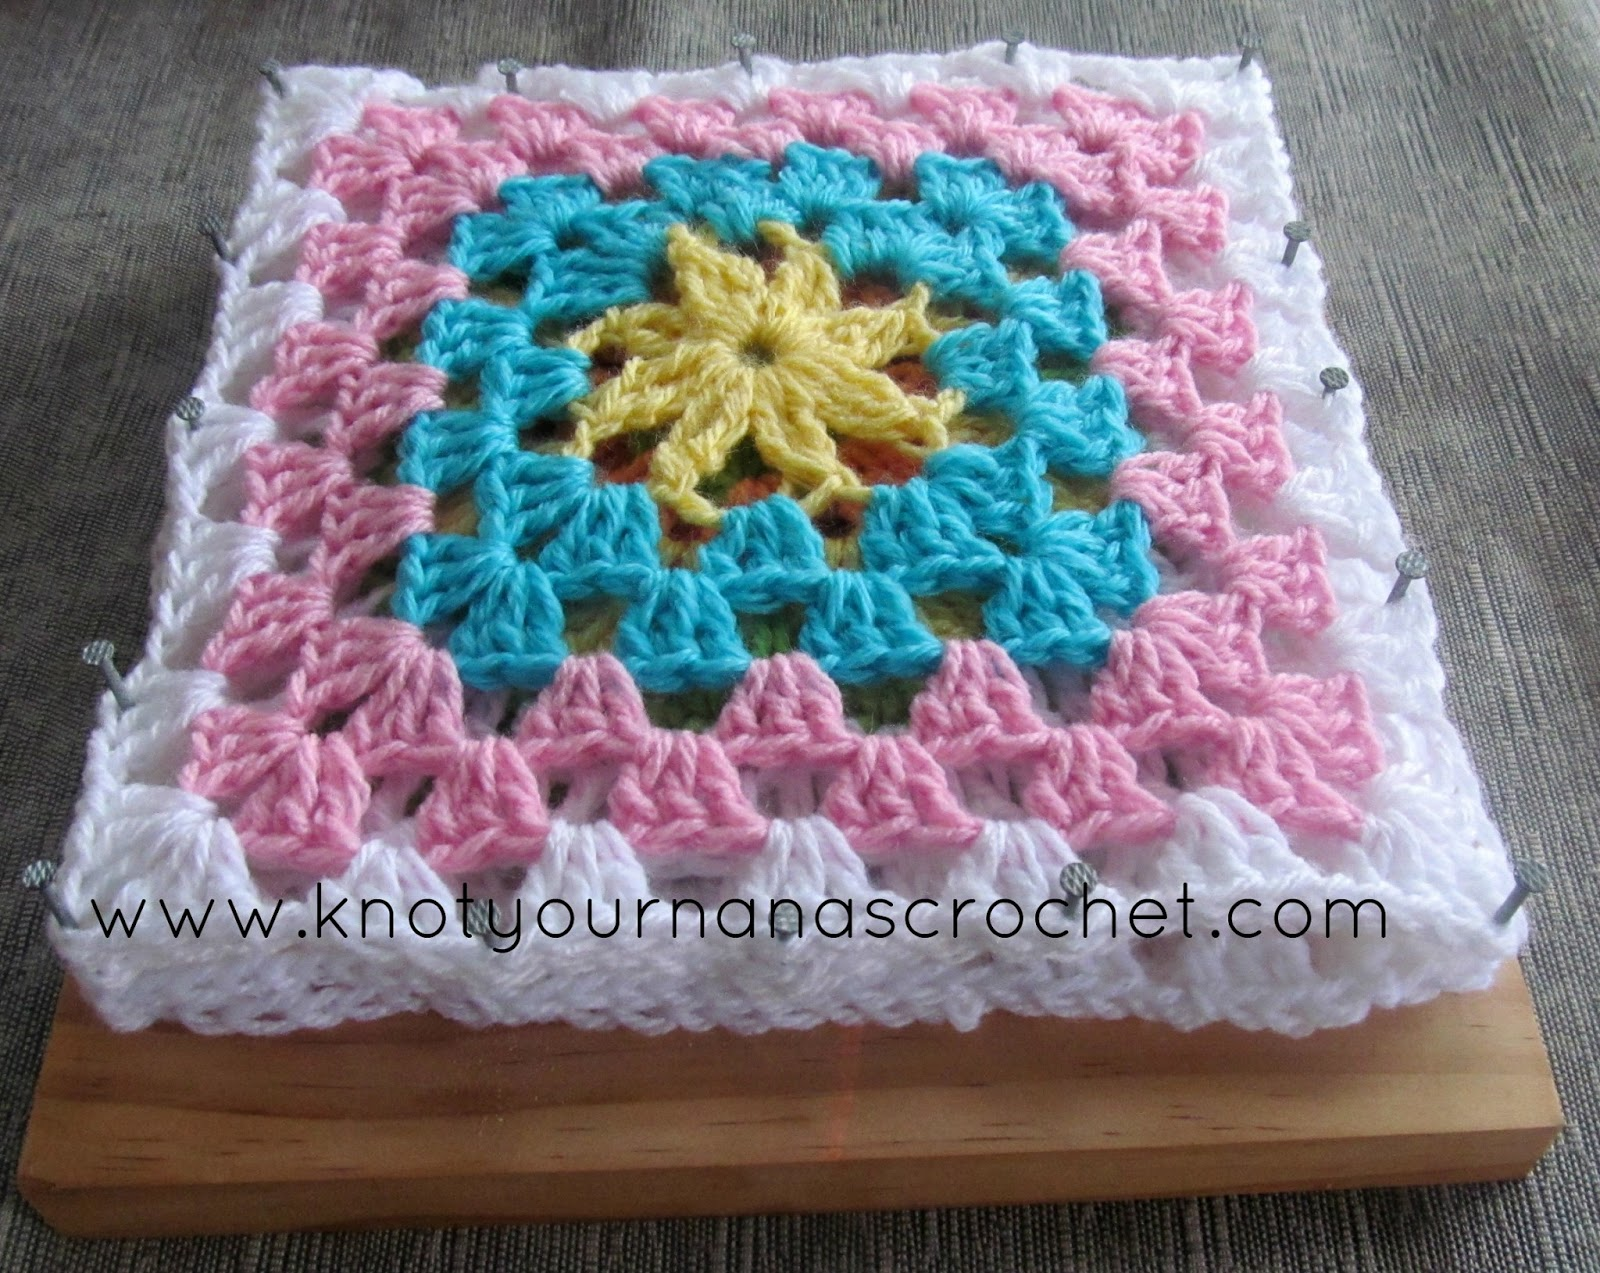 Knot Your Nanas Crochet: How I Block my Acrylic Granny Squares